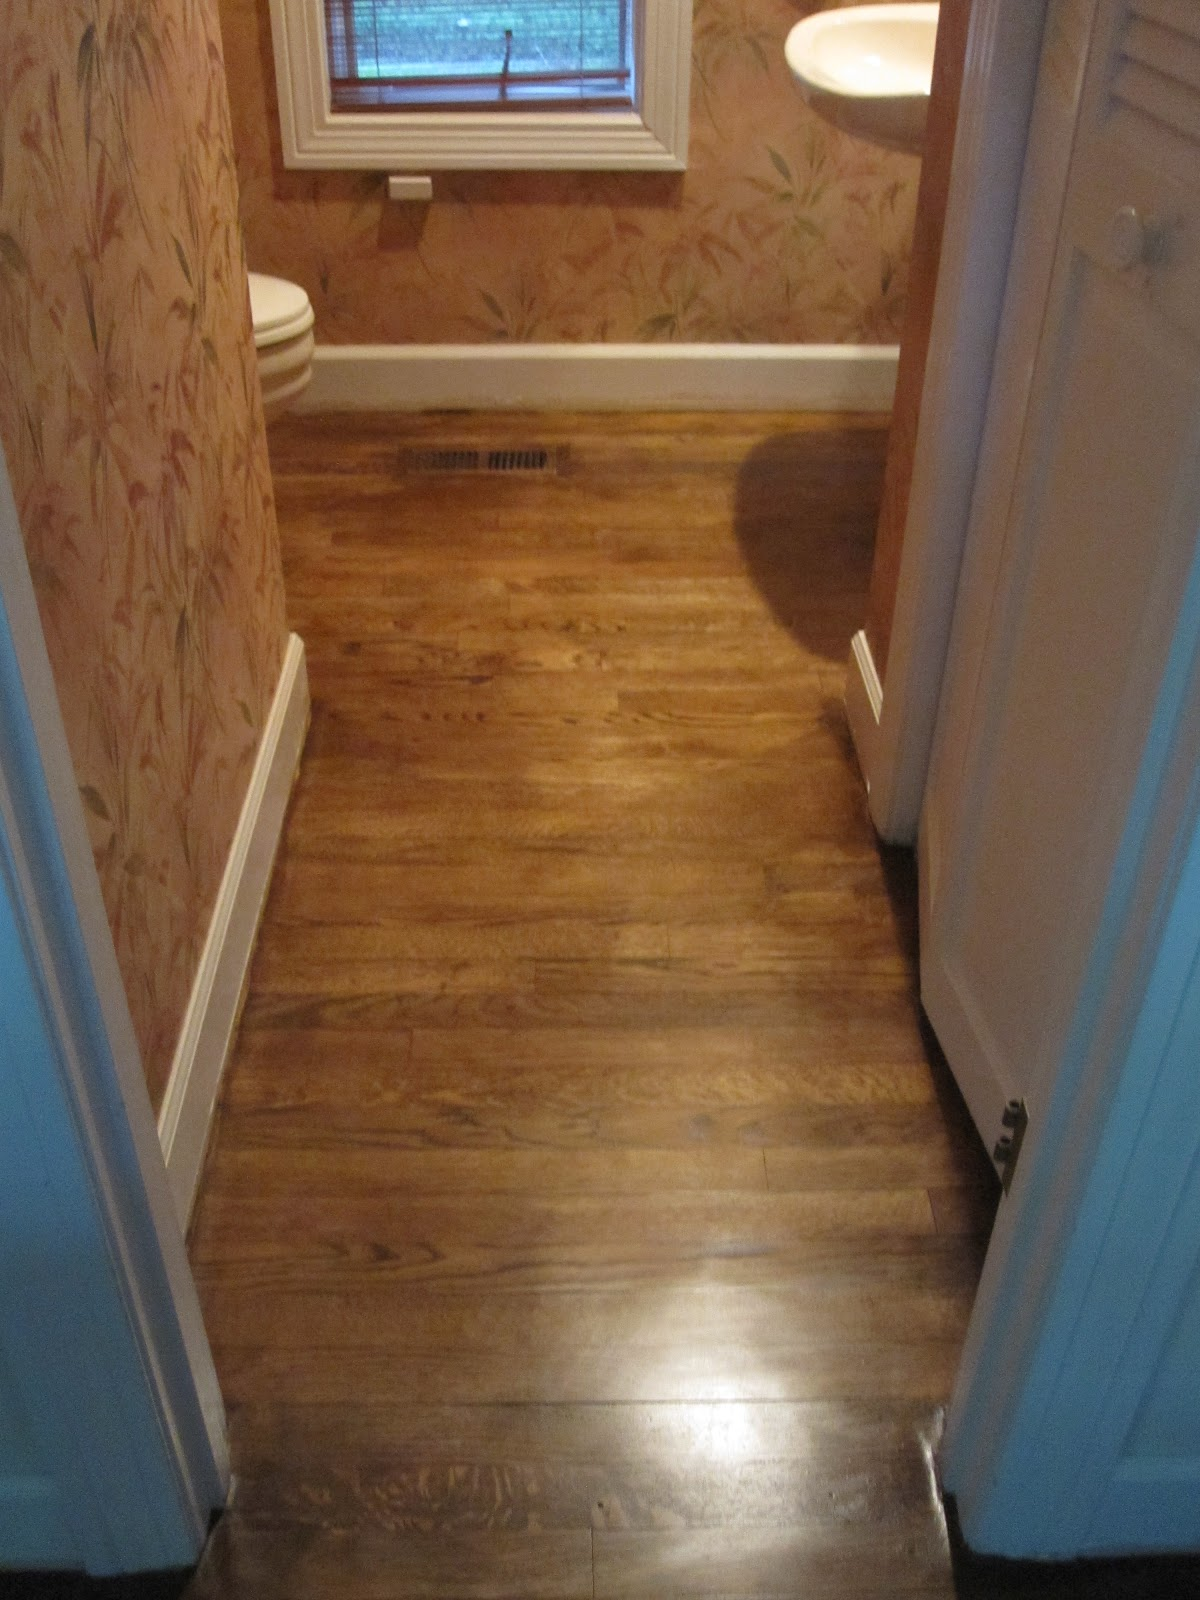 get paint off hard wood floors photos - Get Paint Off Hard Wood Floors - Wood Floors